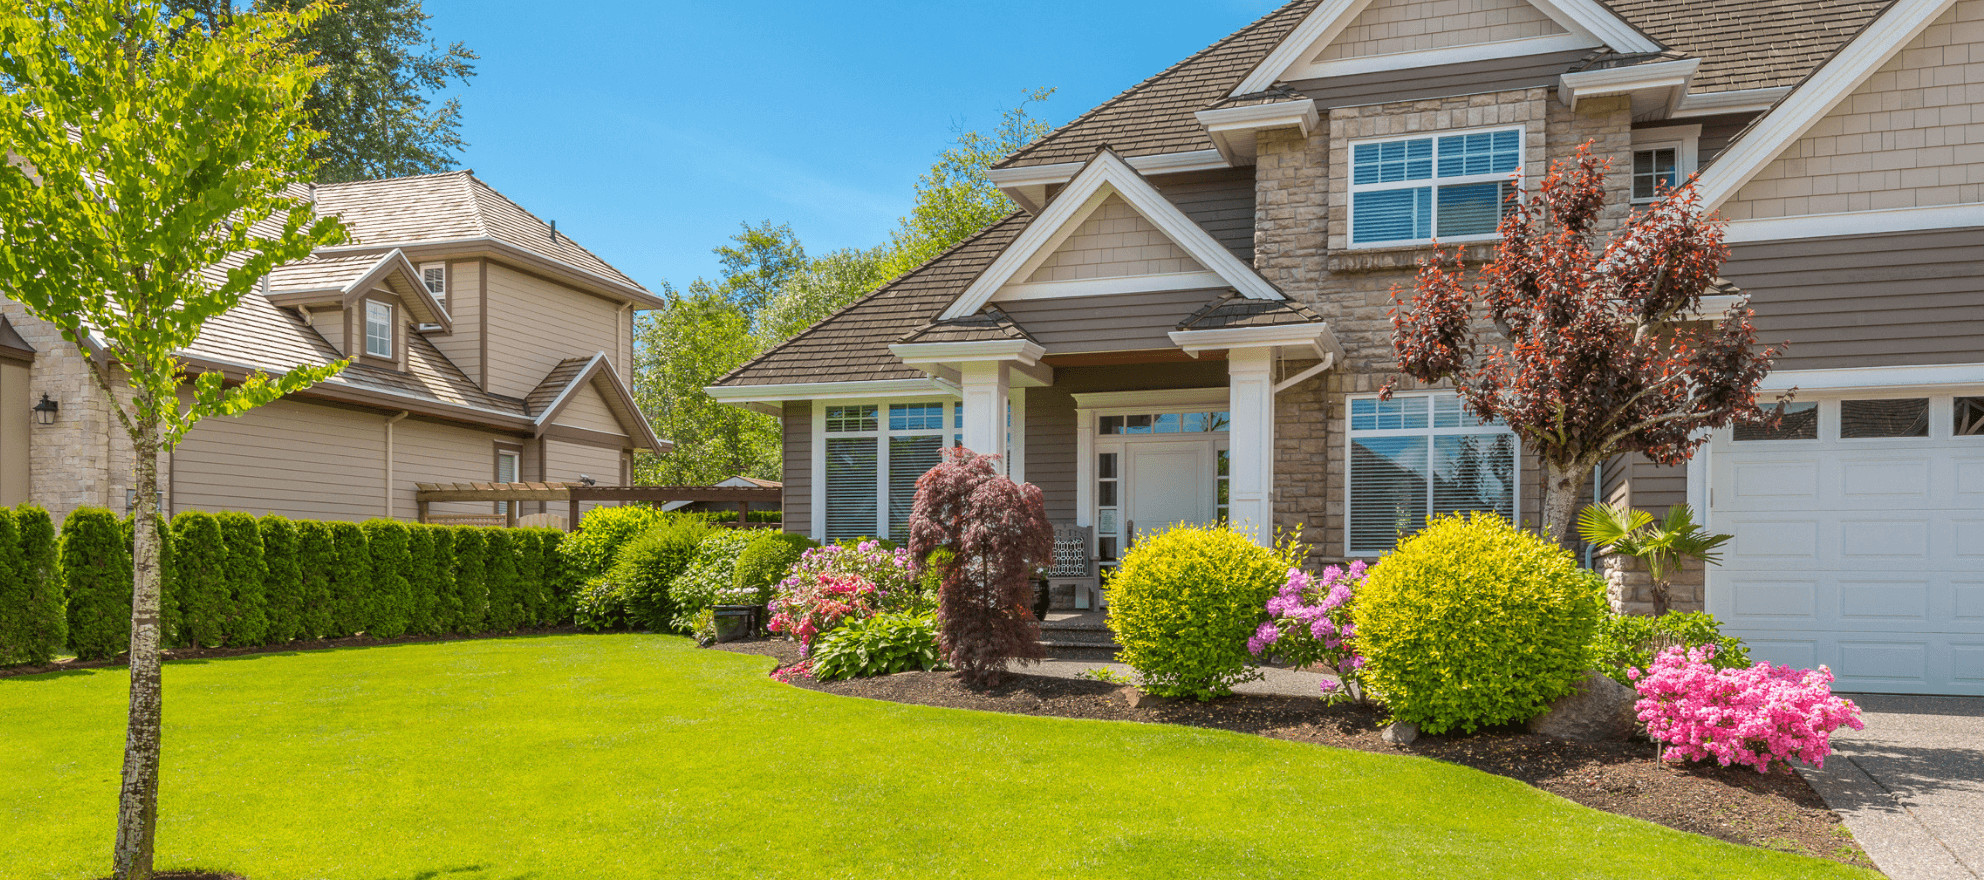 Outdoor Landscape Curb Appeal  Quick Curb Appeal Landscaping Hacks to Add to Your